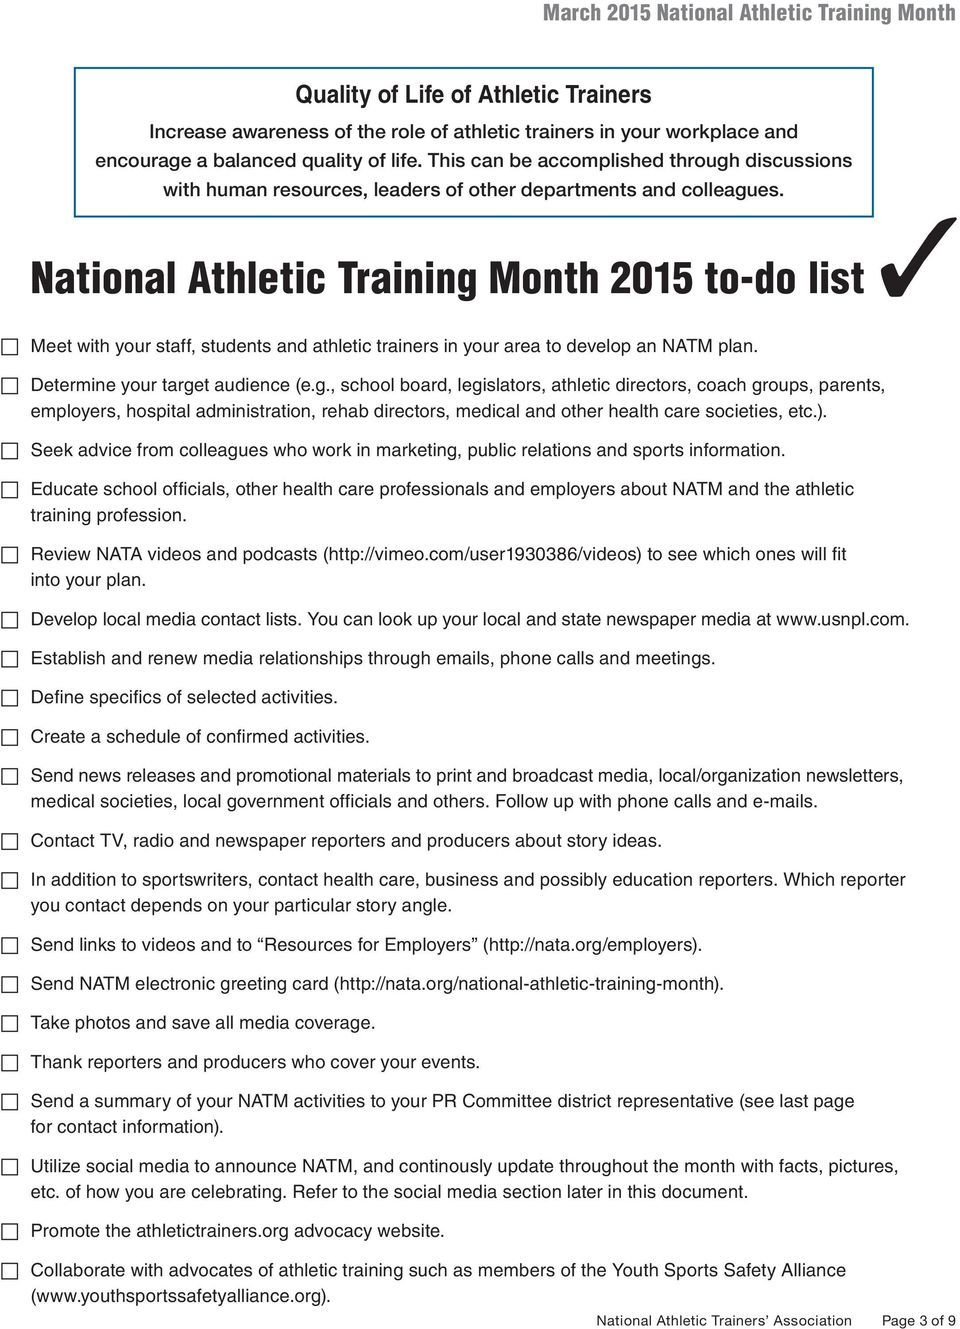 National Athletic Training Month 2015 to-do list 3 c Meet with your staff, students and athletic trainers in your area to develop an NATM plan. c Determine your target audience (e.g., school board, legislators, athletic directors, coach groups, parents, employers, hospital administration, rehab directors, medical and other health care societies, etc.